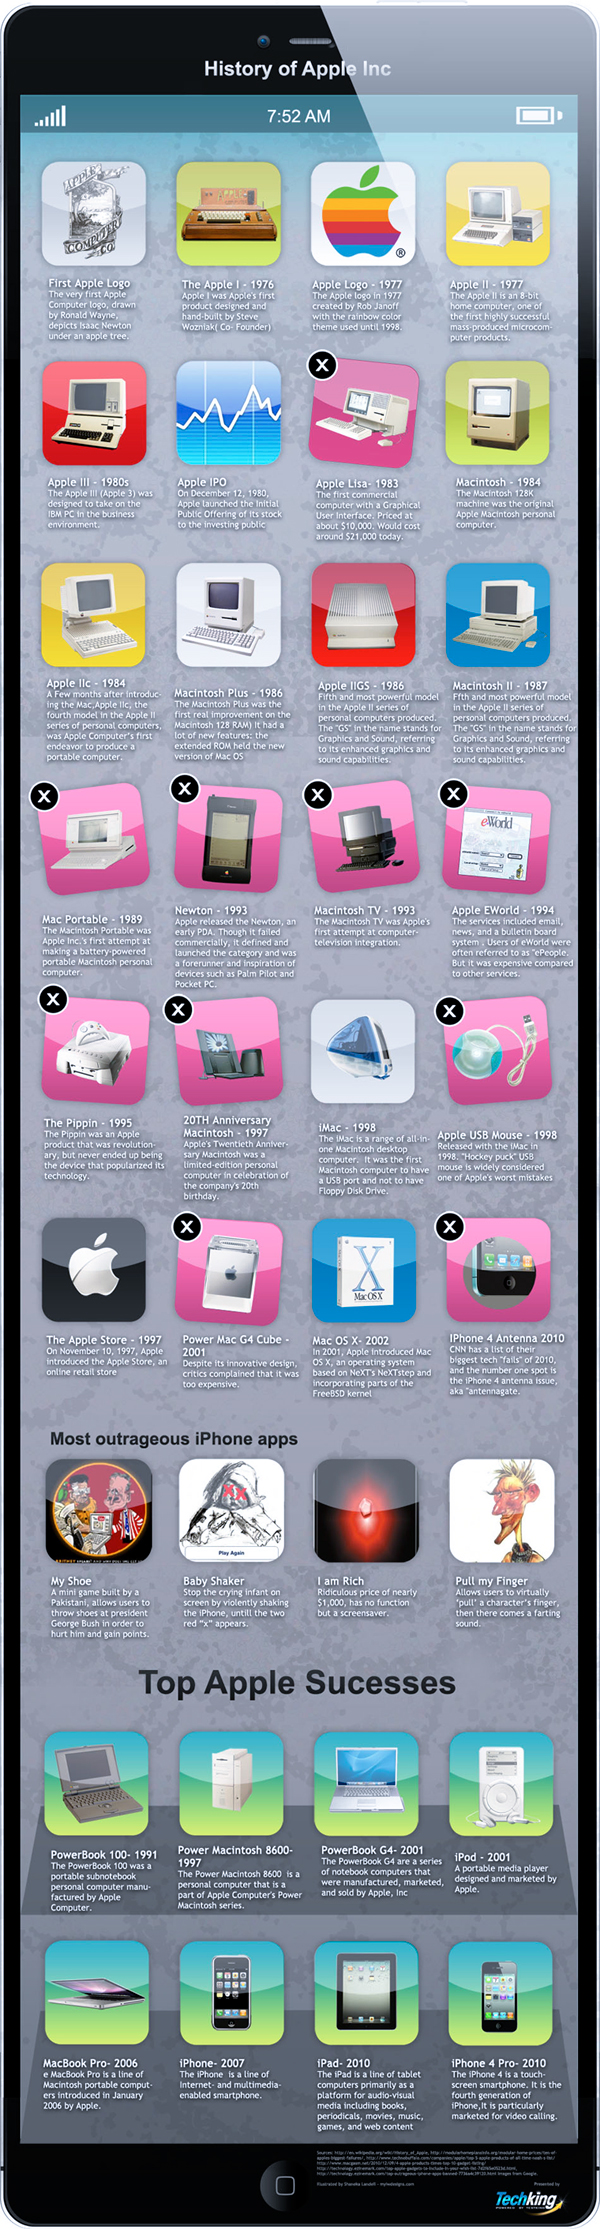 Infographic: History of Apple